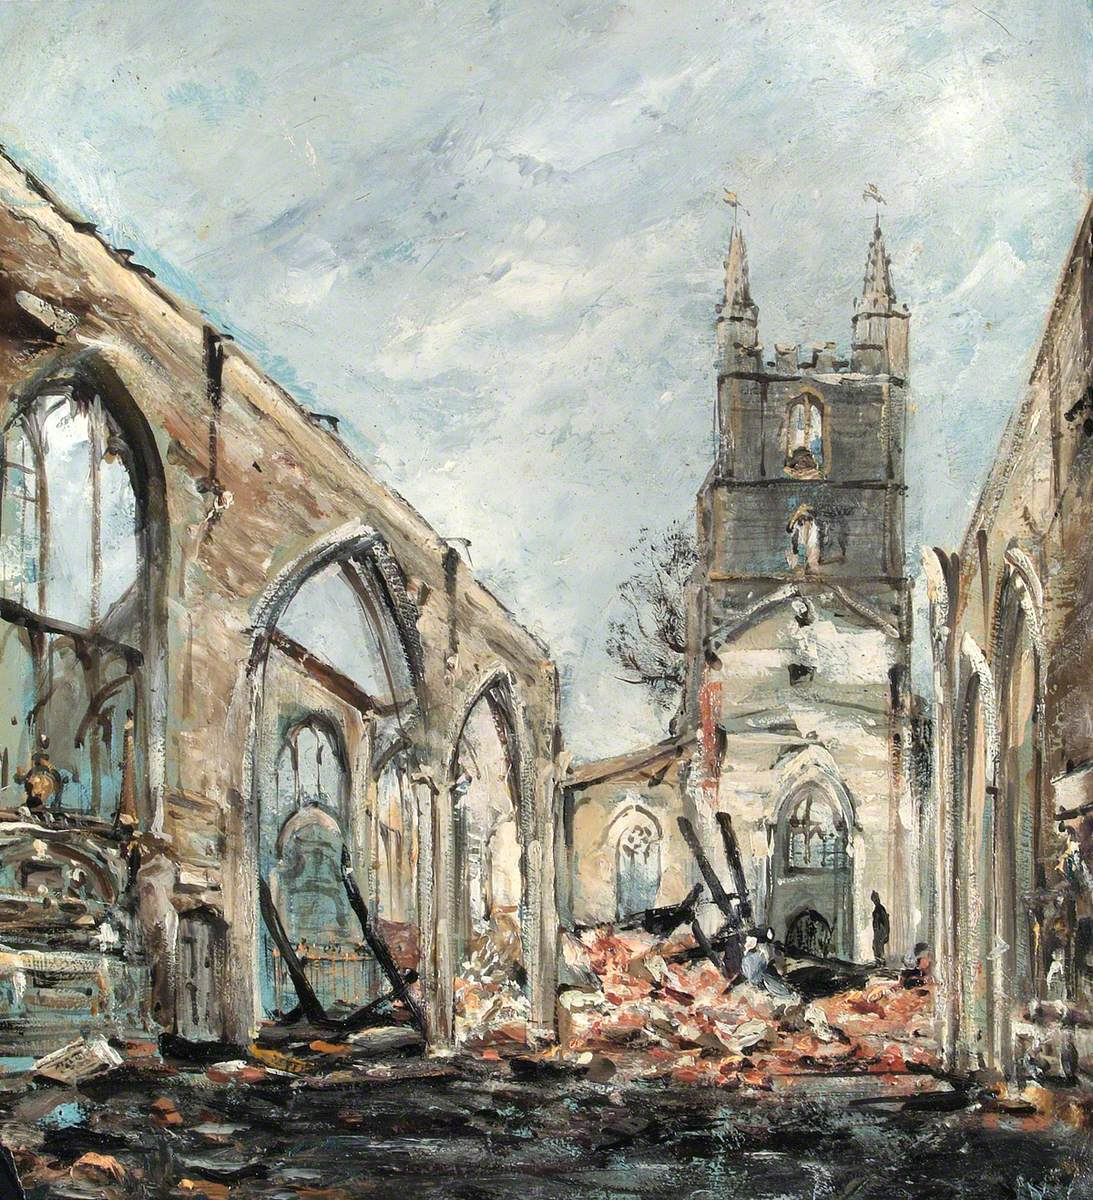 St John's, Croydon, the Morning after the Fire